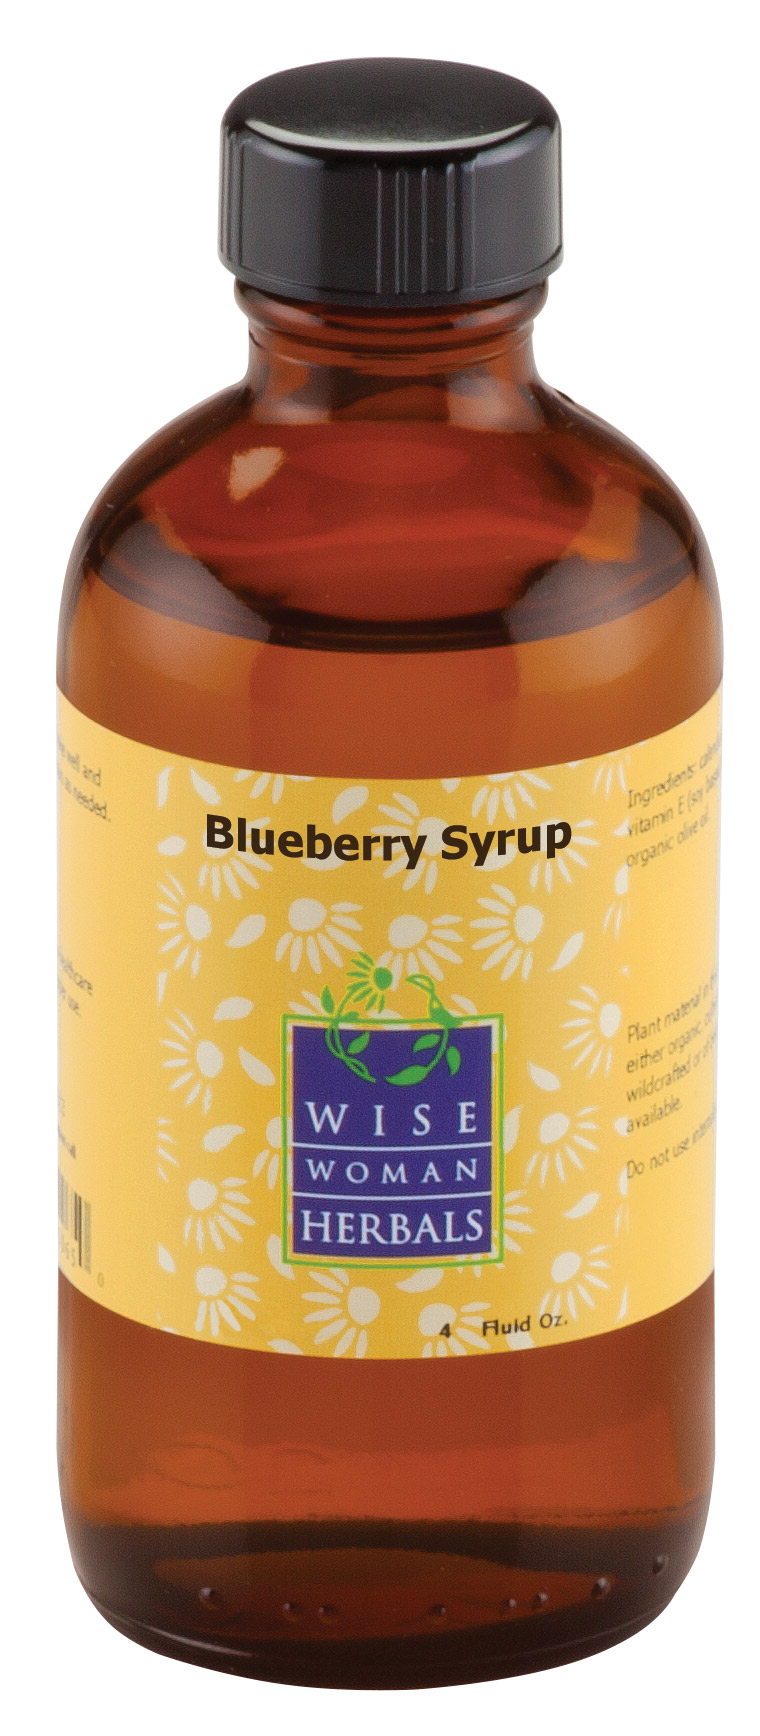 Blueberry Syrup, 2 oz (Expires 12/19)